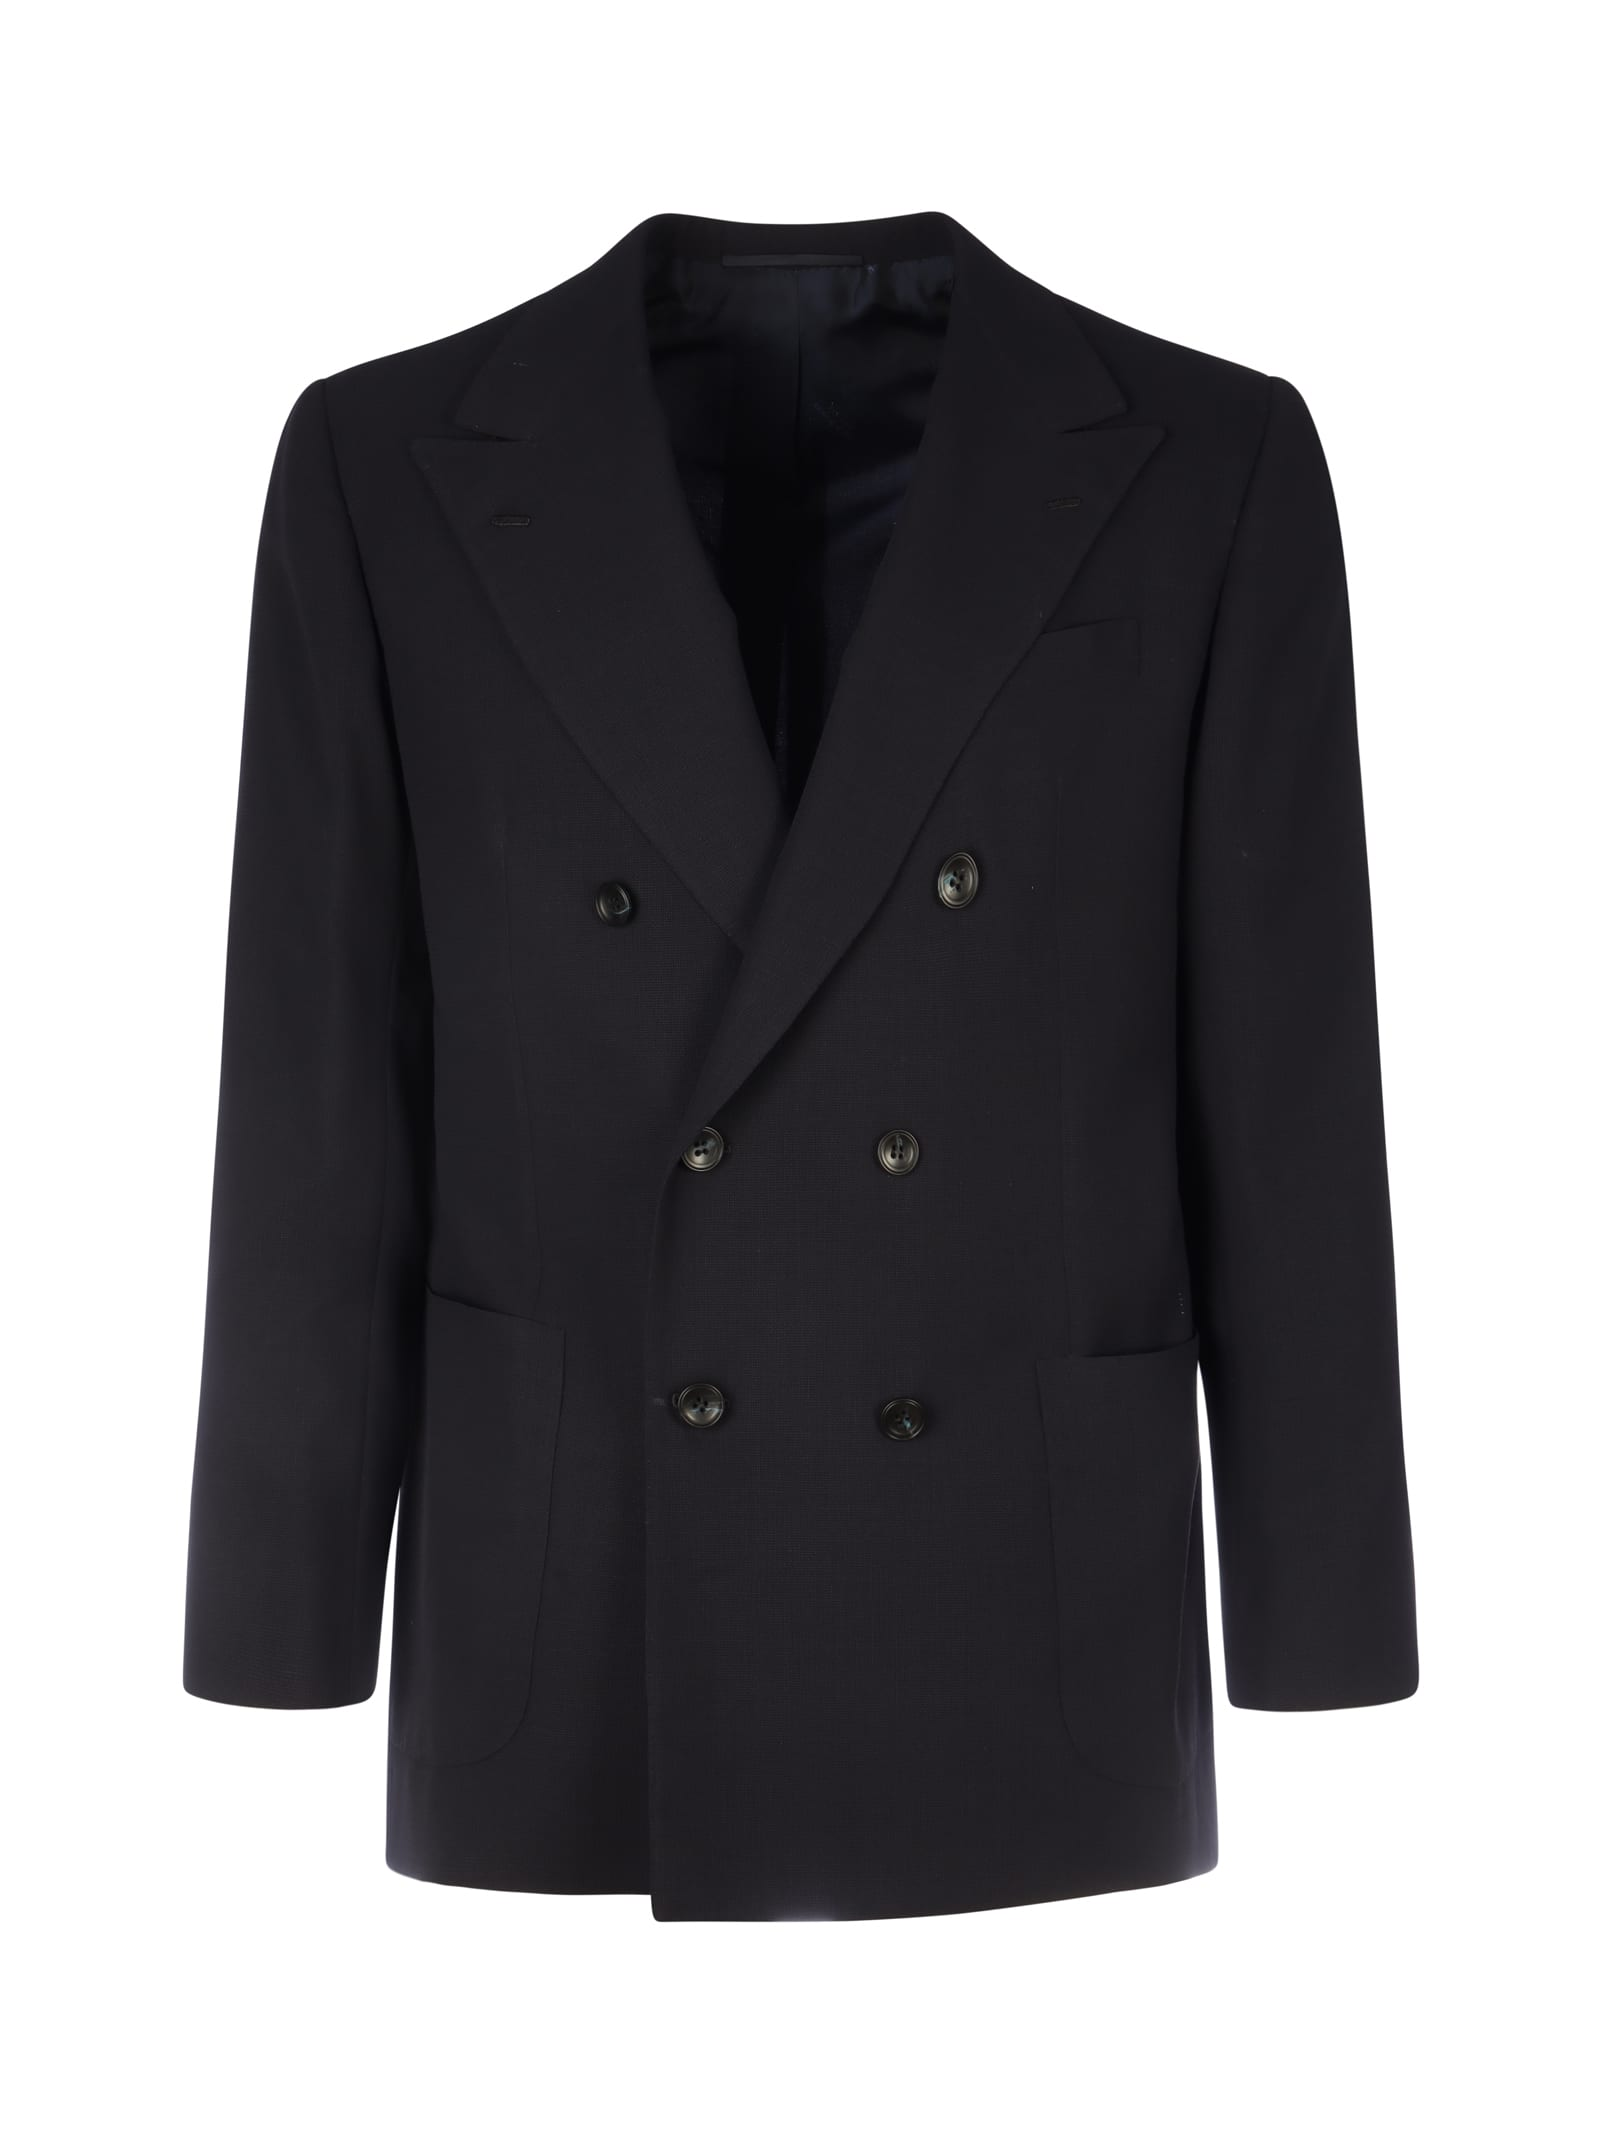 Kiton DOUBLE-BREASTED WOOL BLAZER